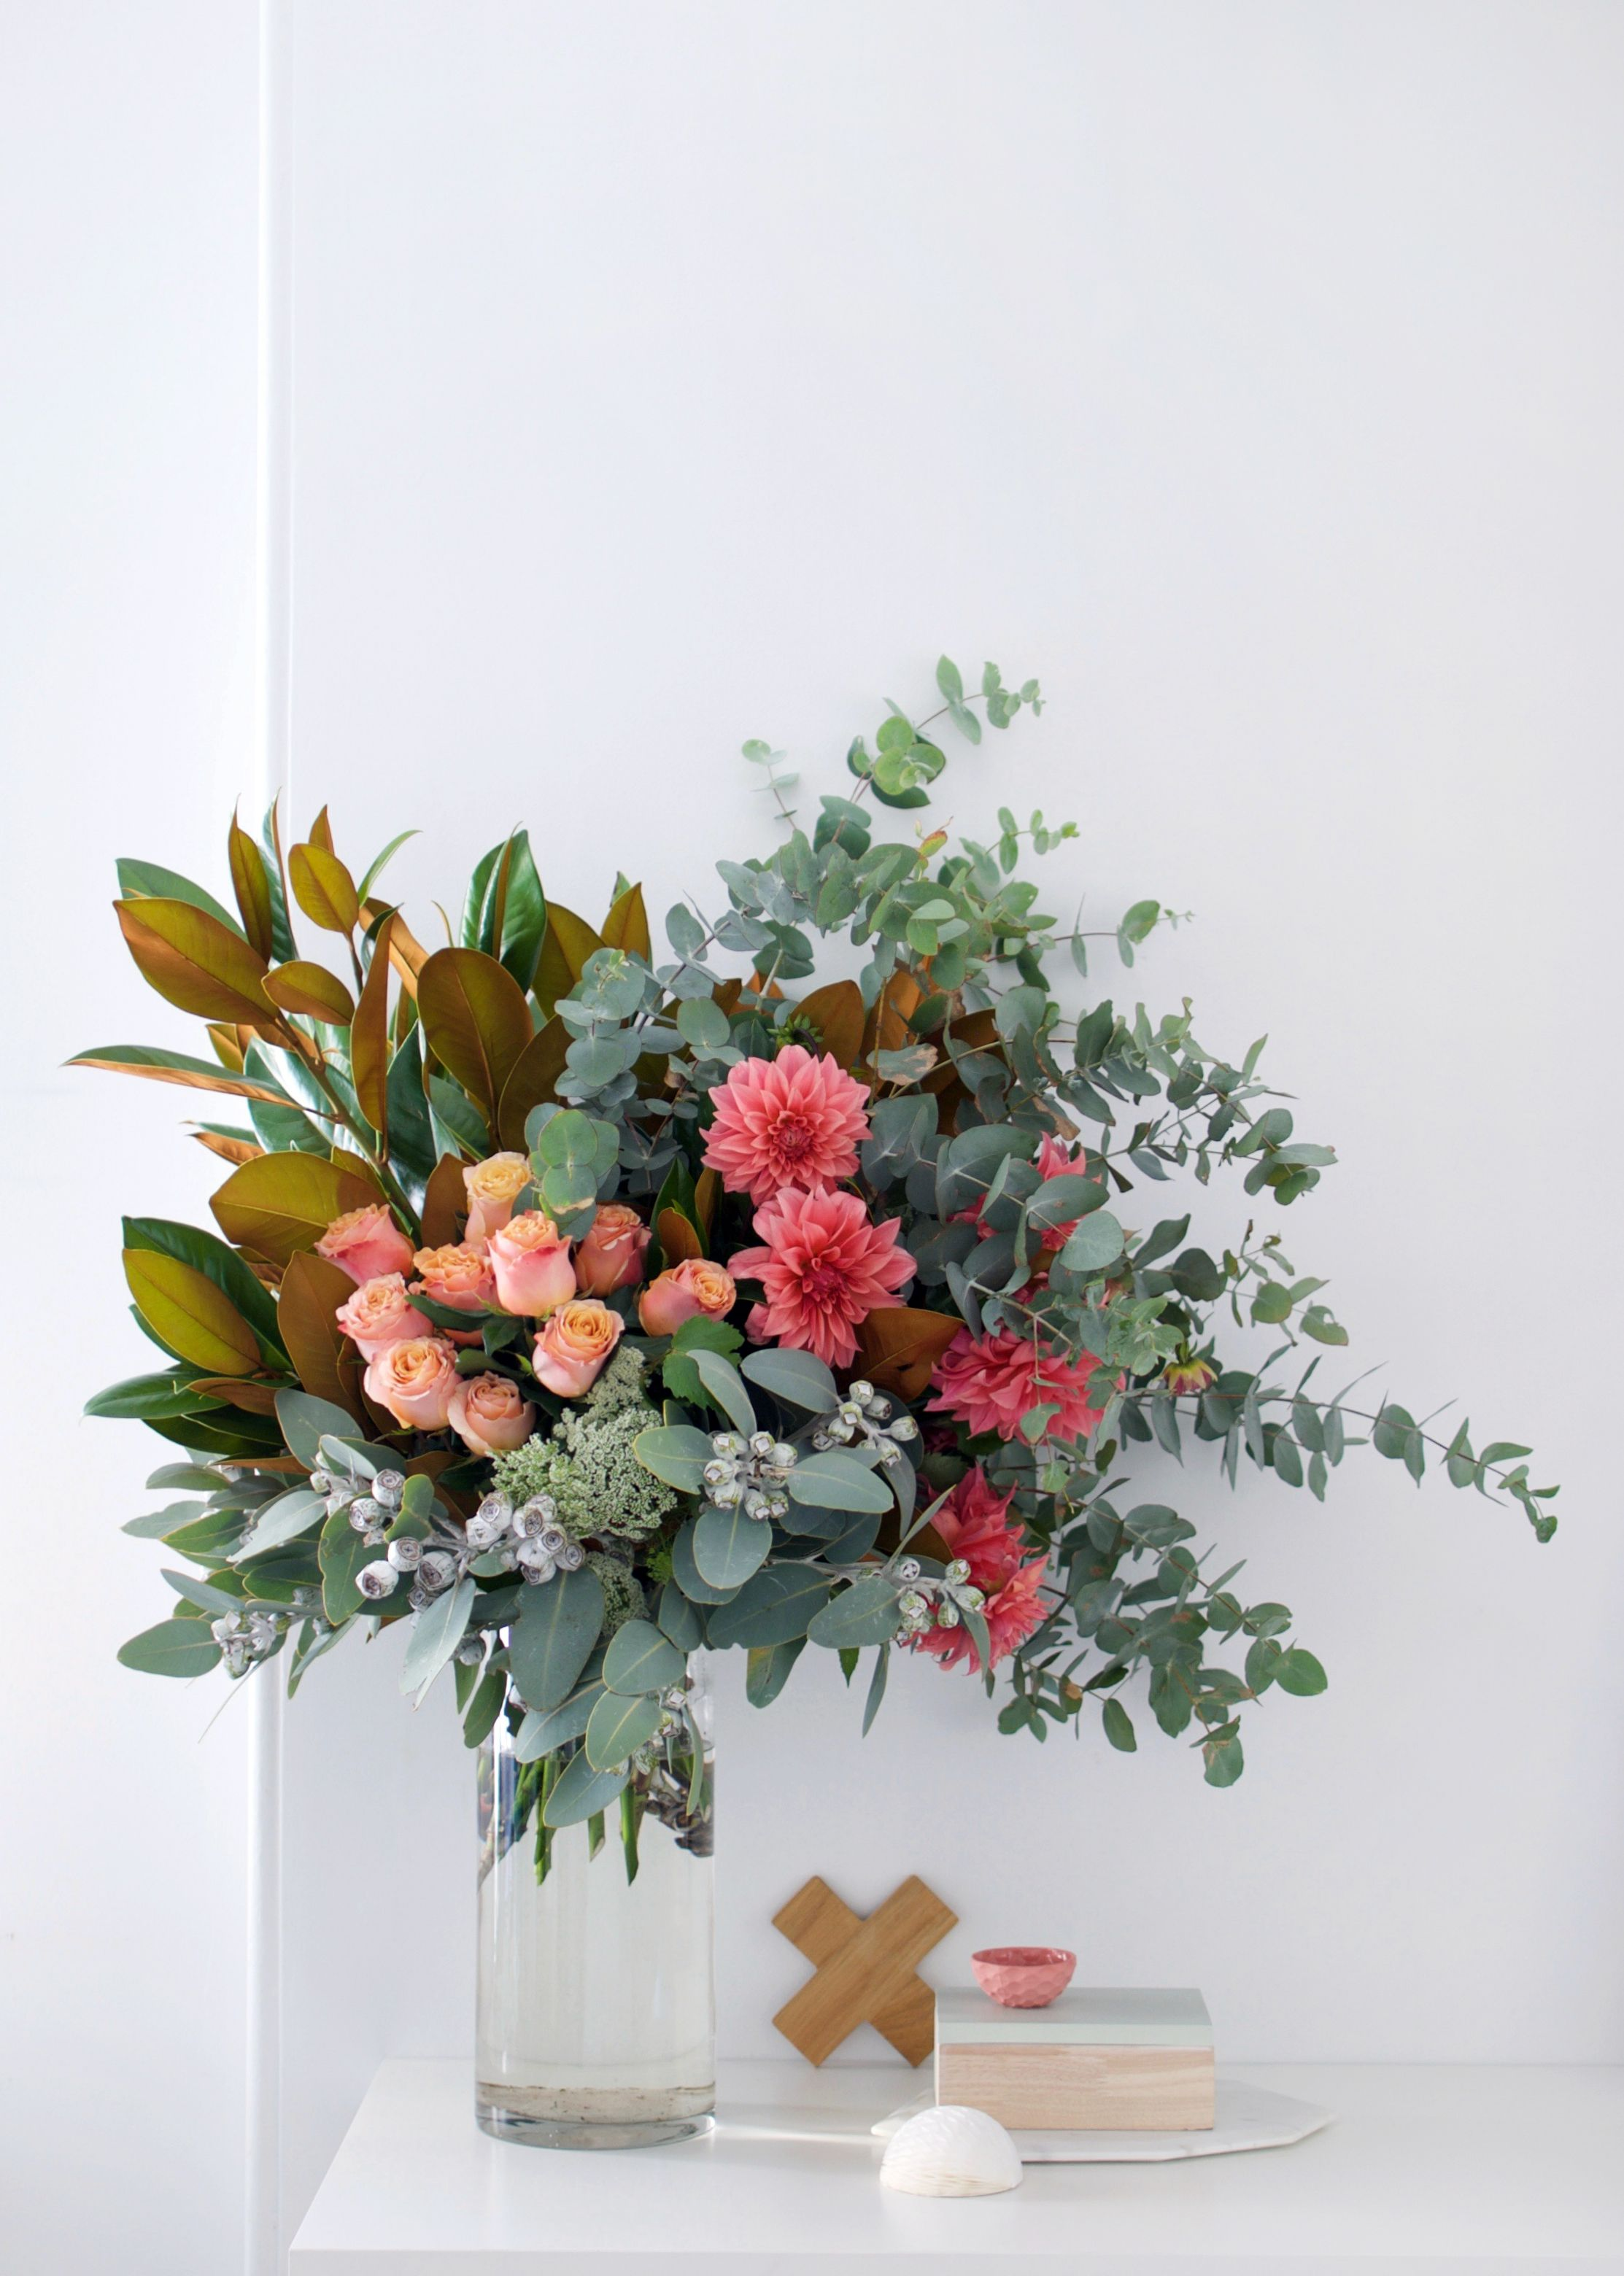 Tips to arrange a flower garden and how to do it florists flowers tips to arrange a flower garden and how to do it izmirmasajfo Image collections